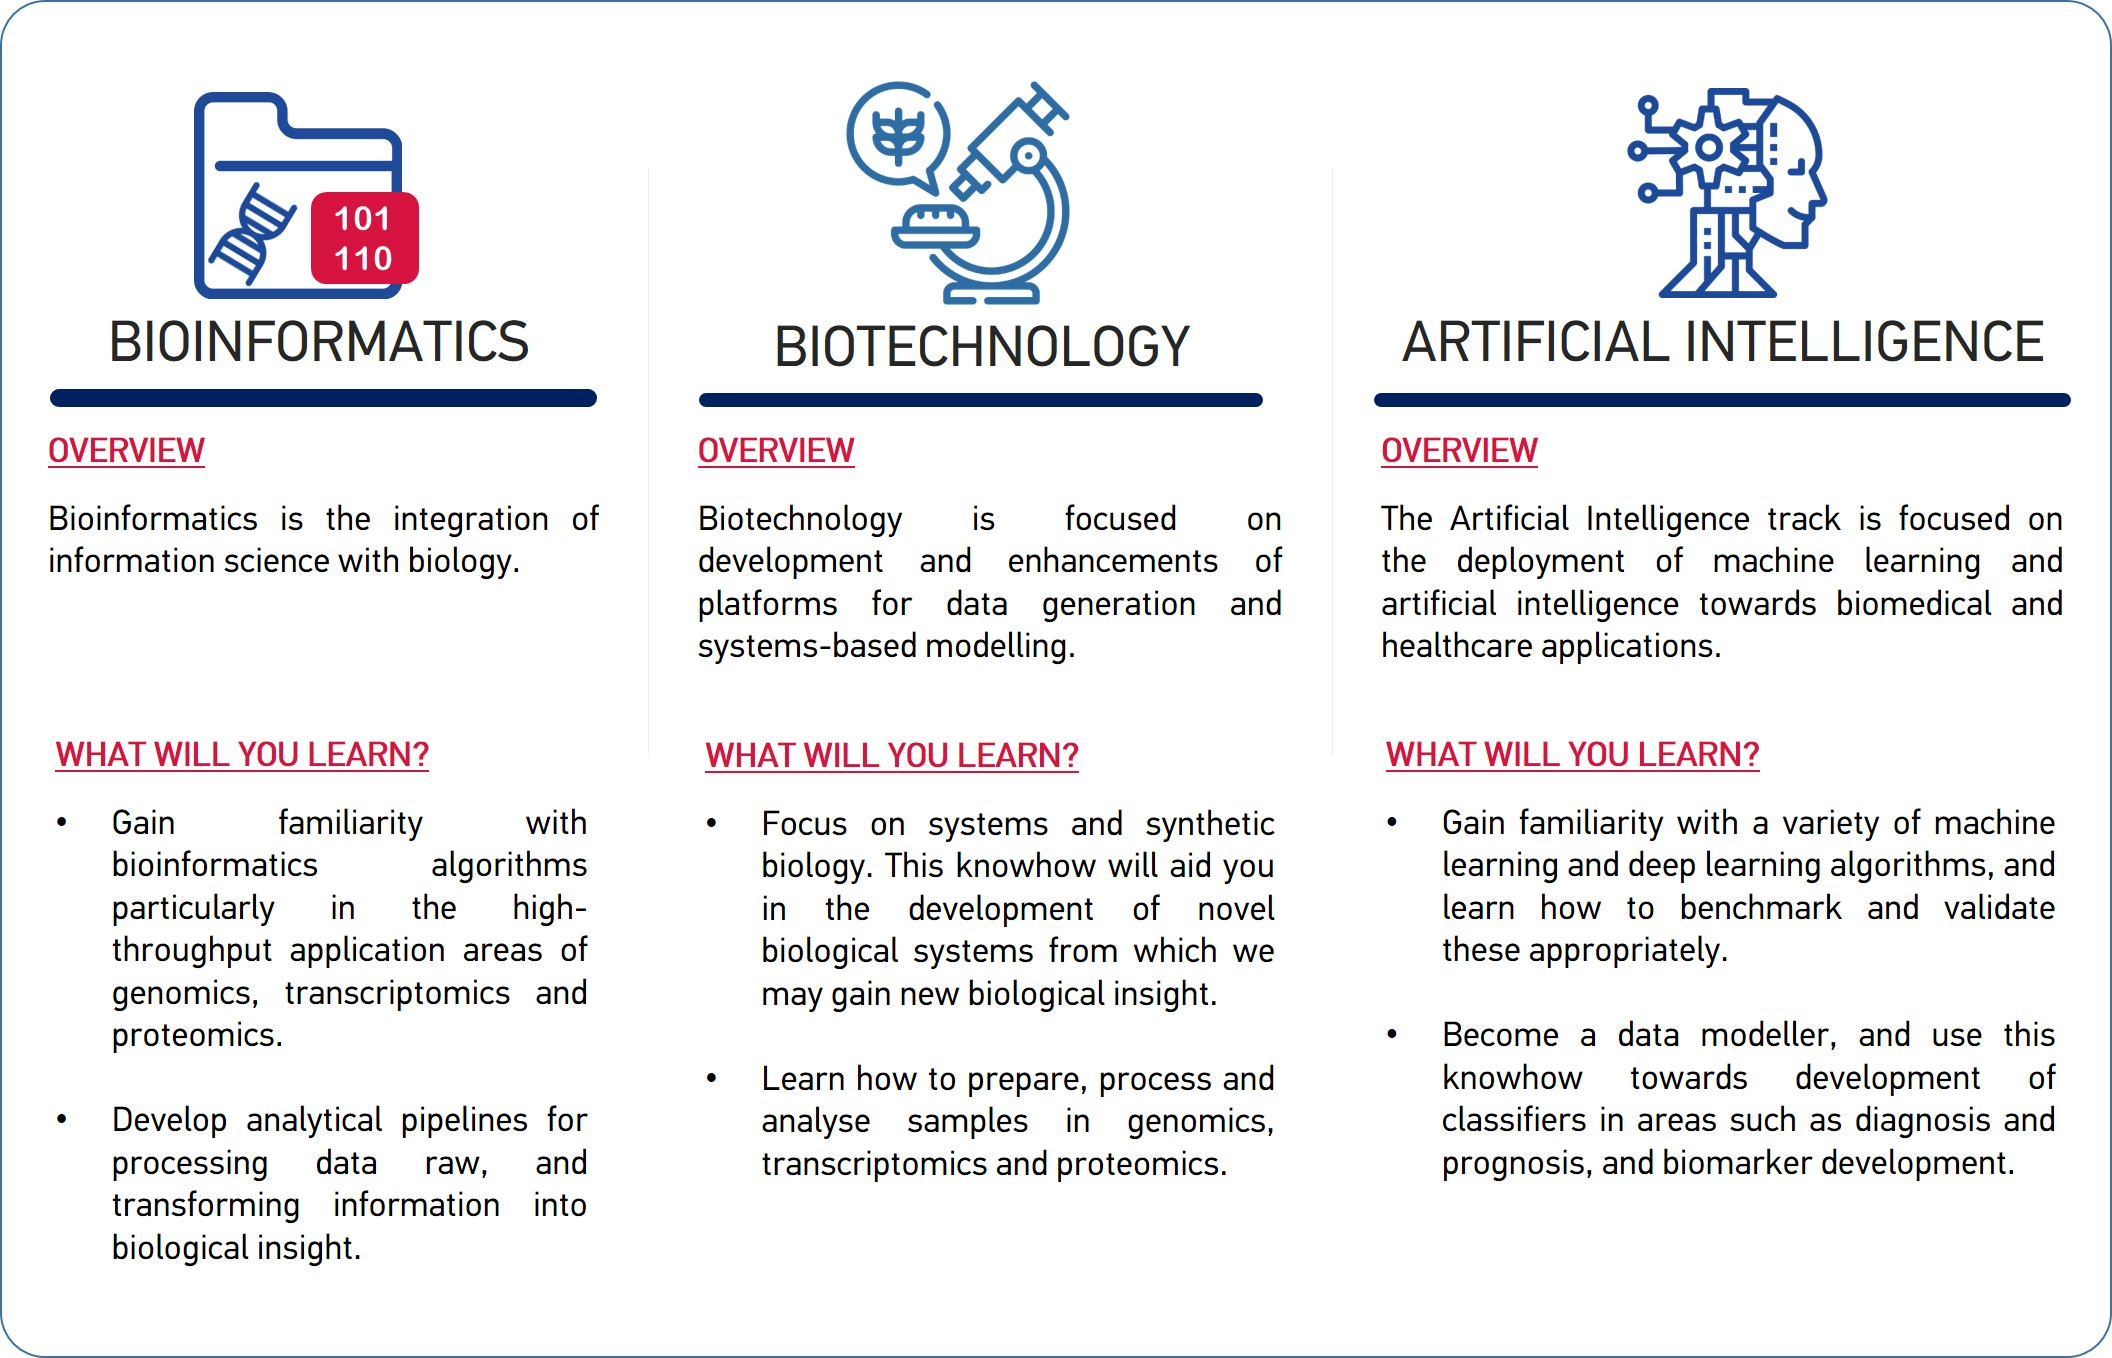 A summary of 3 tracks offered by Biomedical Data Science